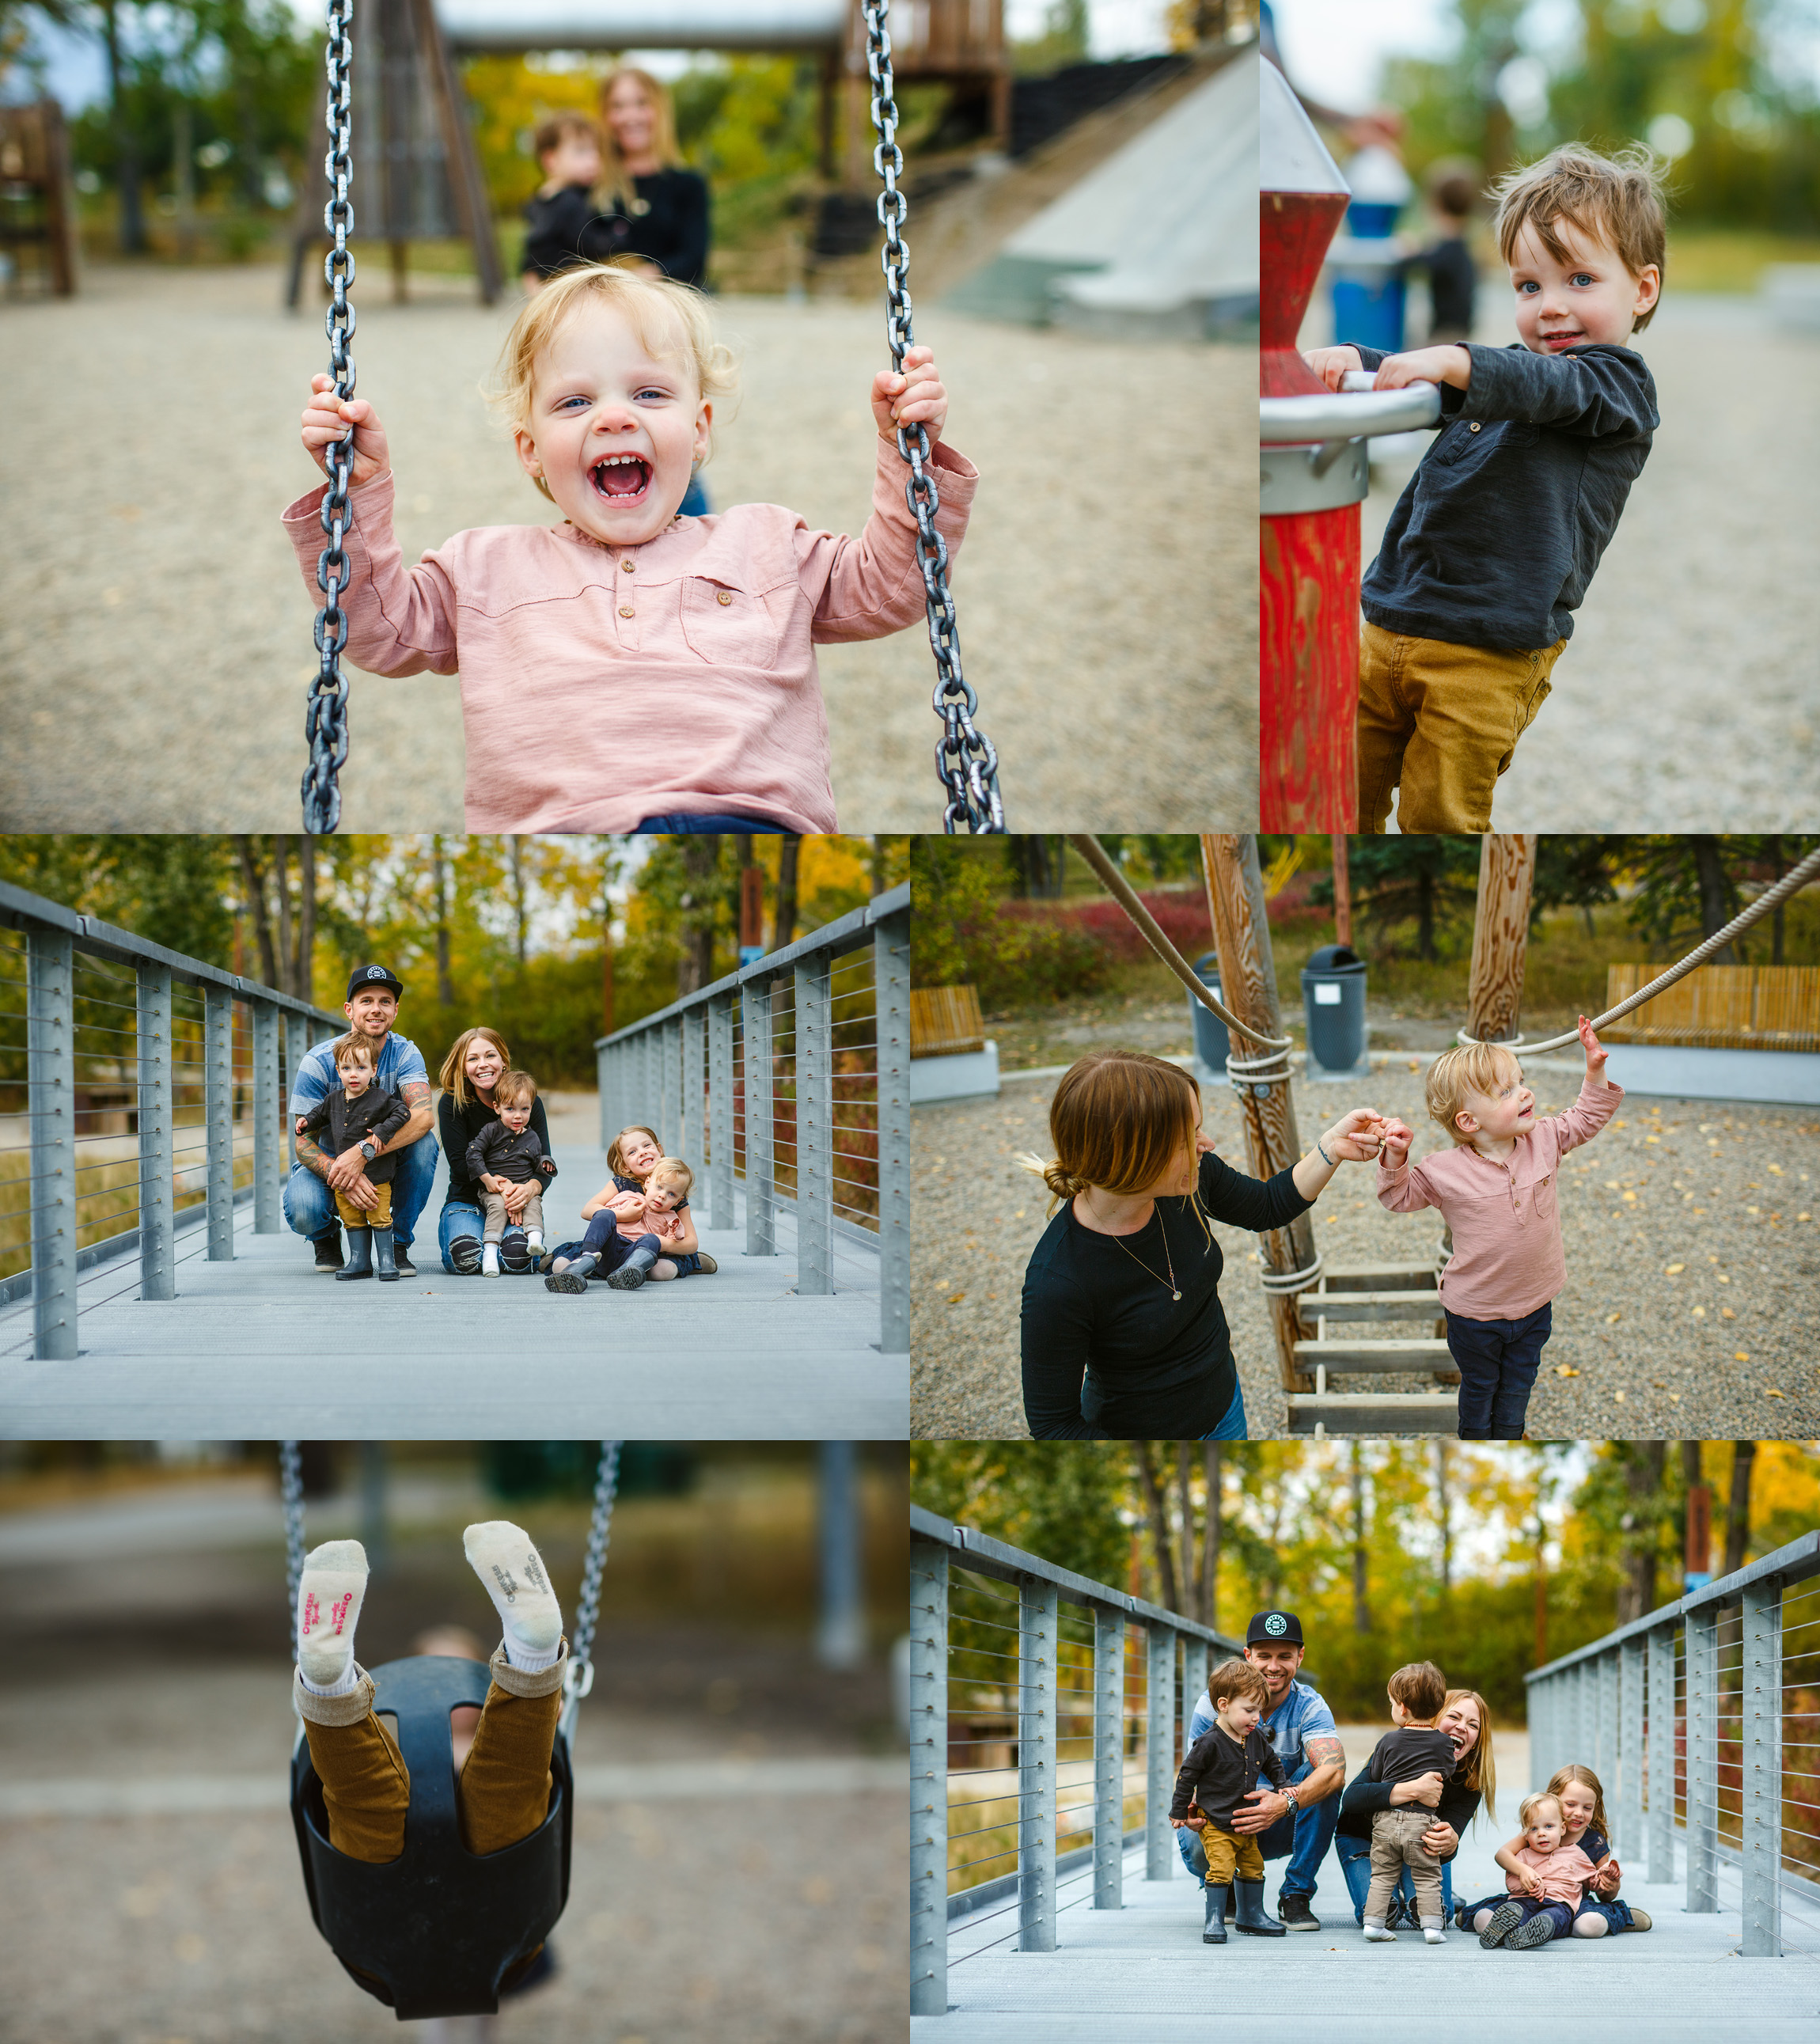 Fun multiples photo session at a playground in Calgary